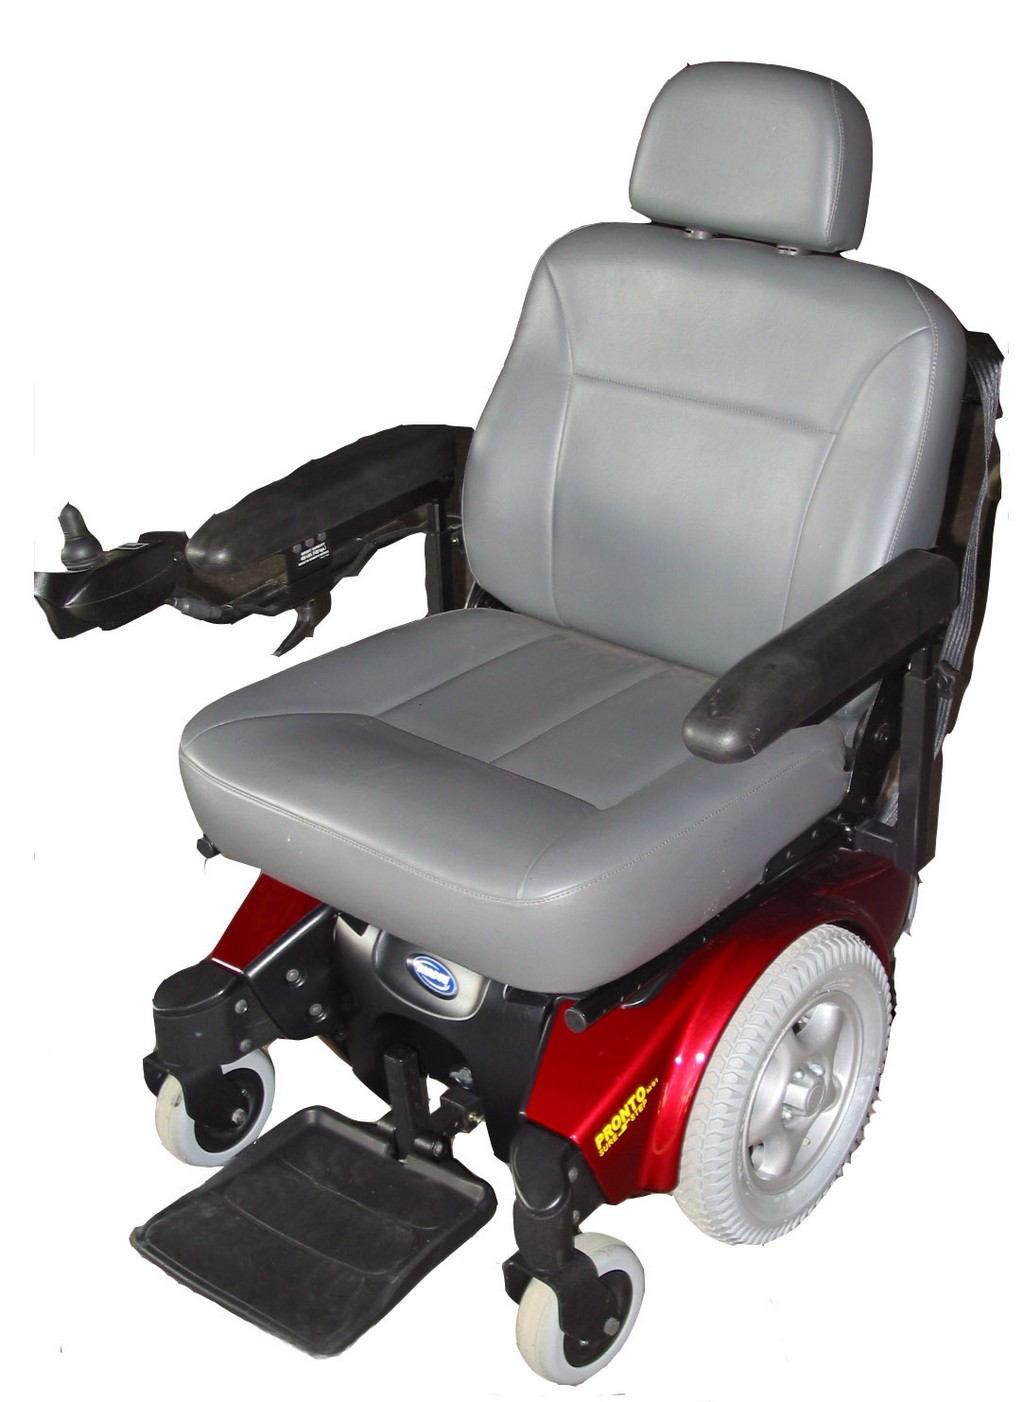 used power wheelchairs for poor people, power wheel chair ramp and easy locks, power wheelchair parts direct, invacare power wheel chair